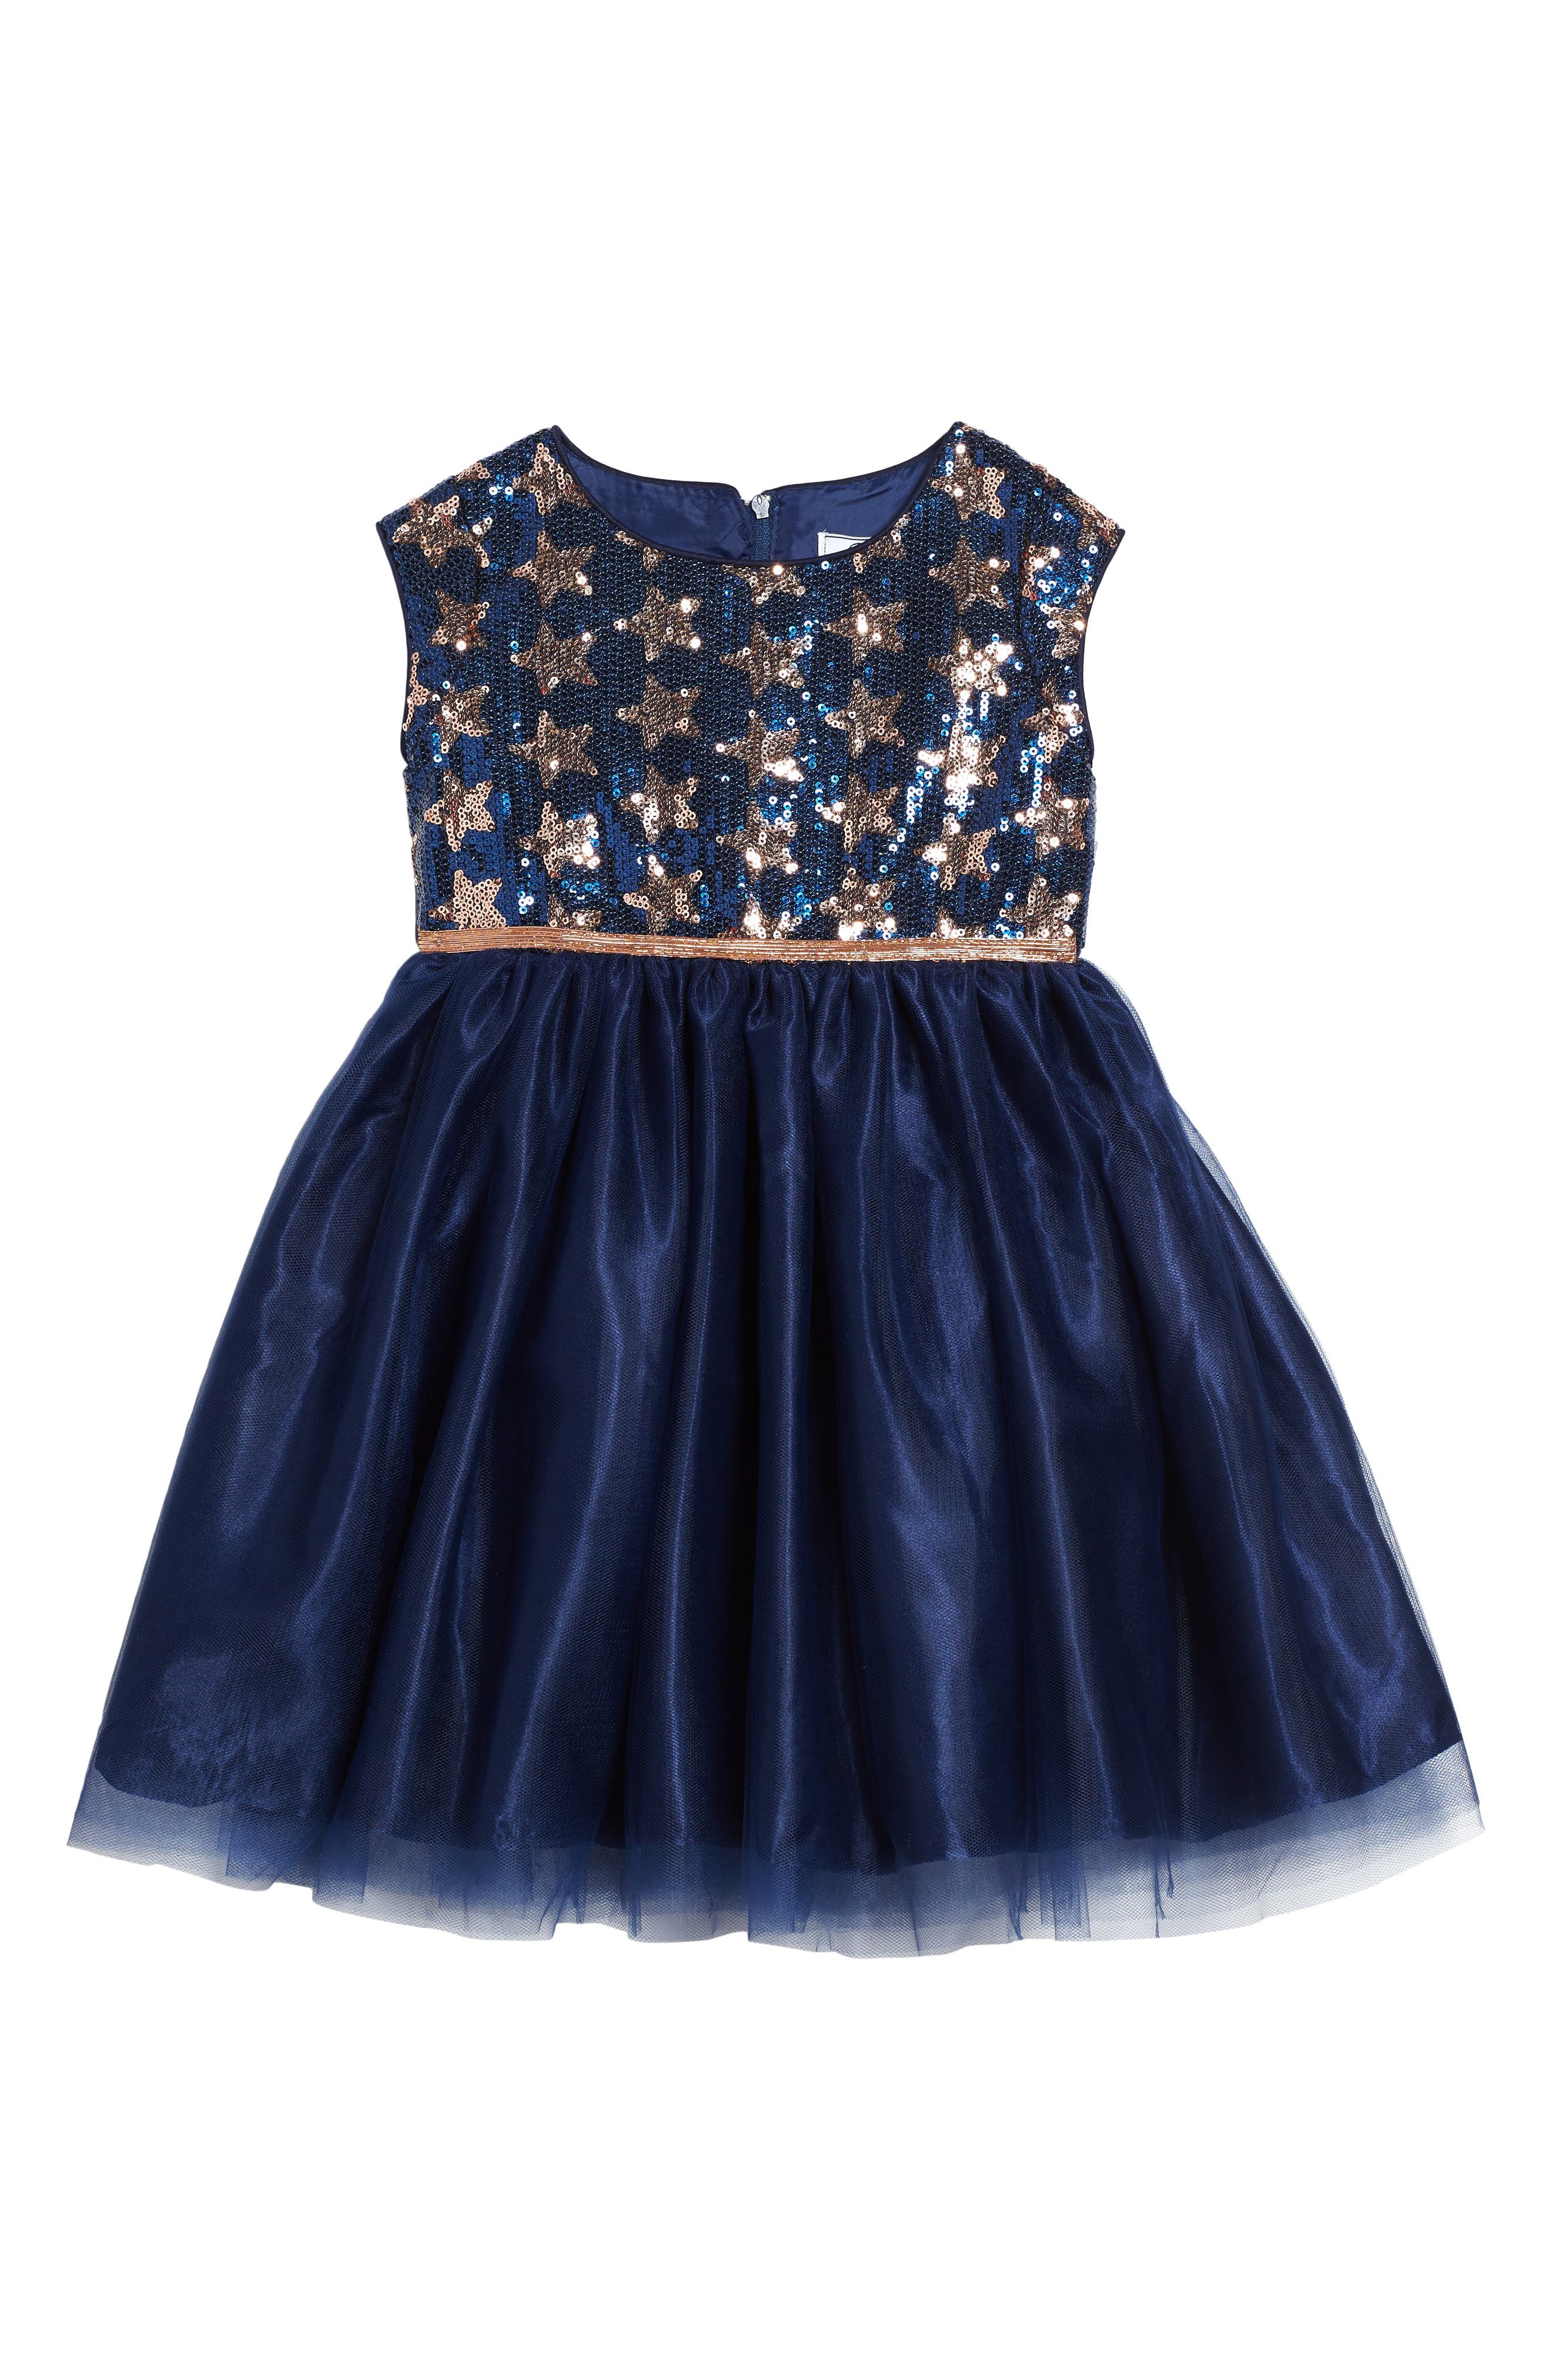 Dorissa Lily Sequin Tulle Dress (Toddler Girls, Little Girls & Big Girls)